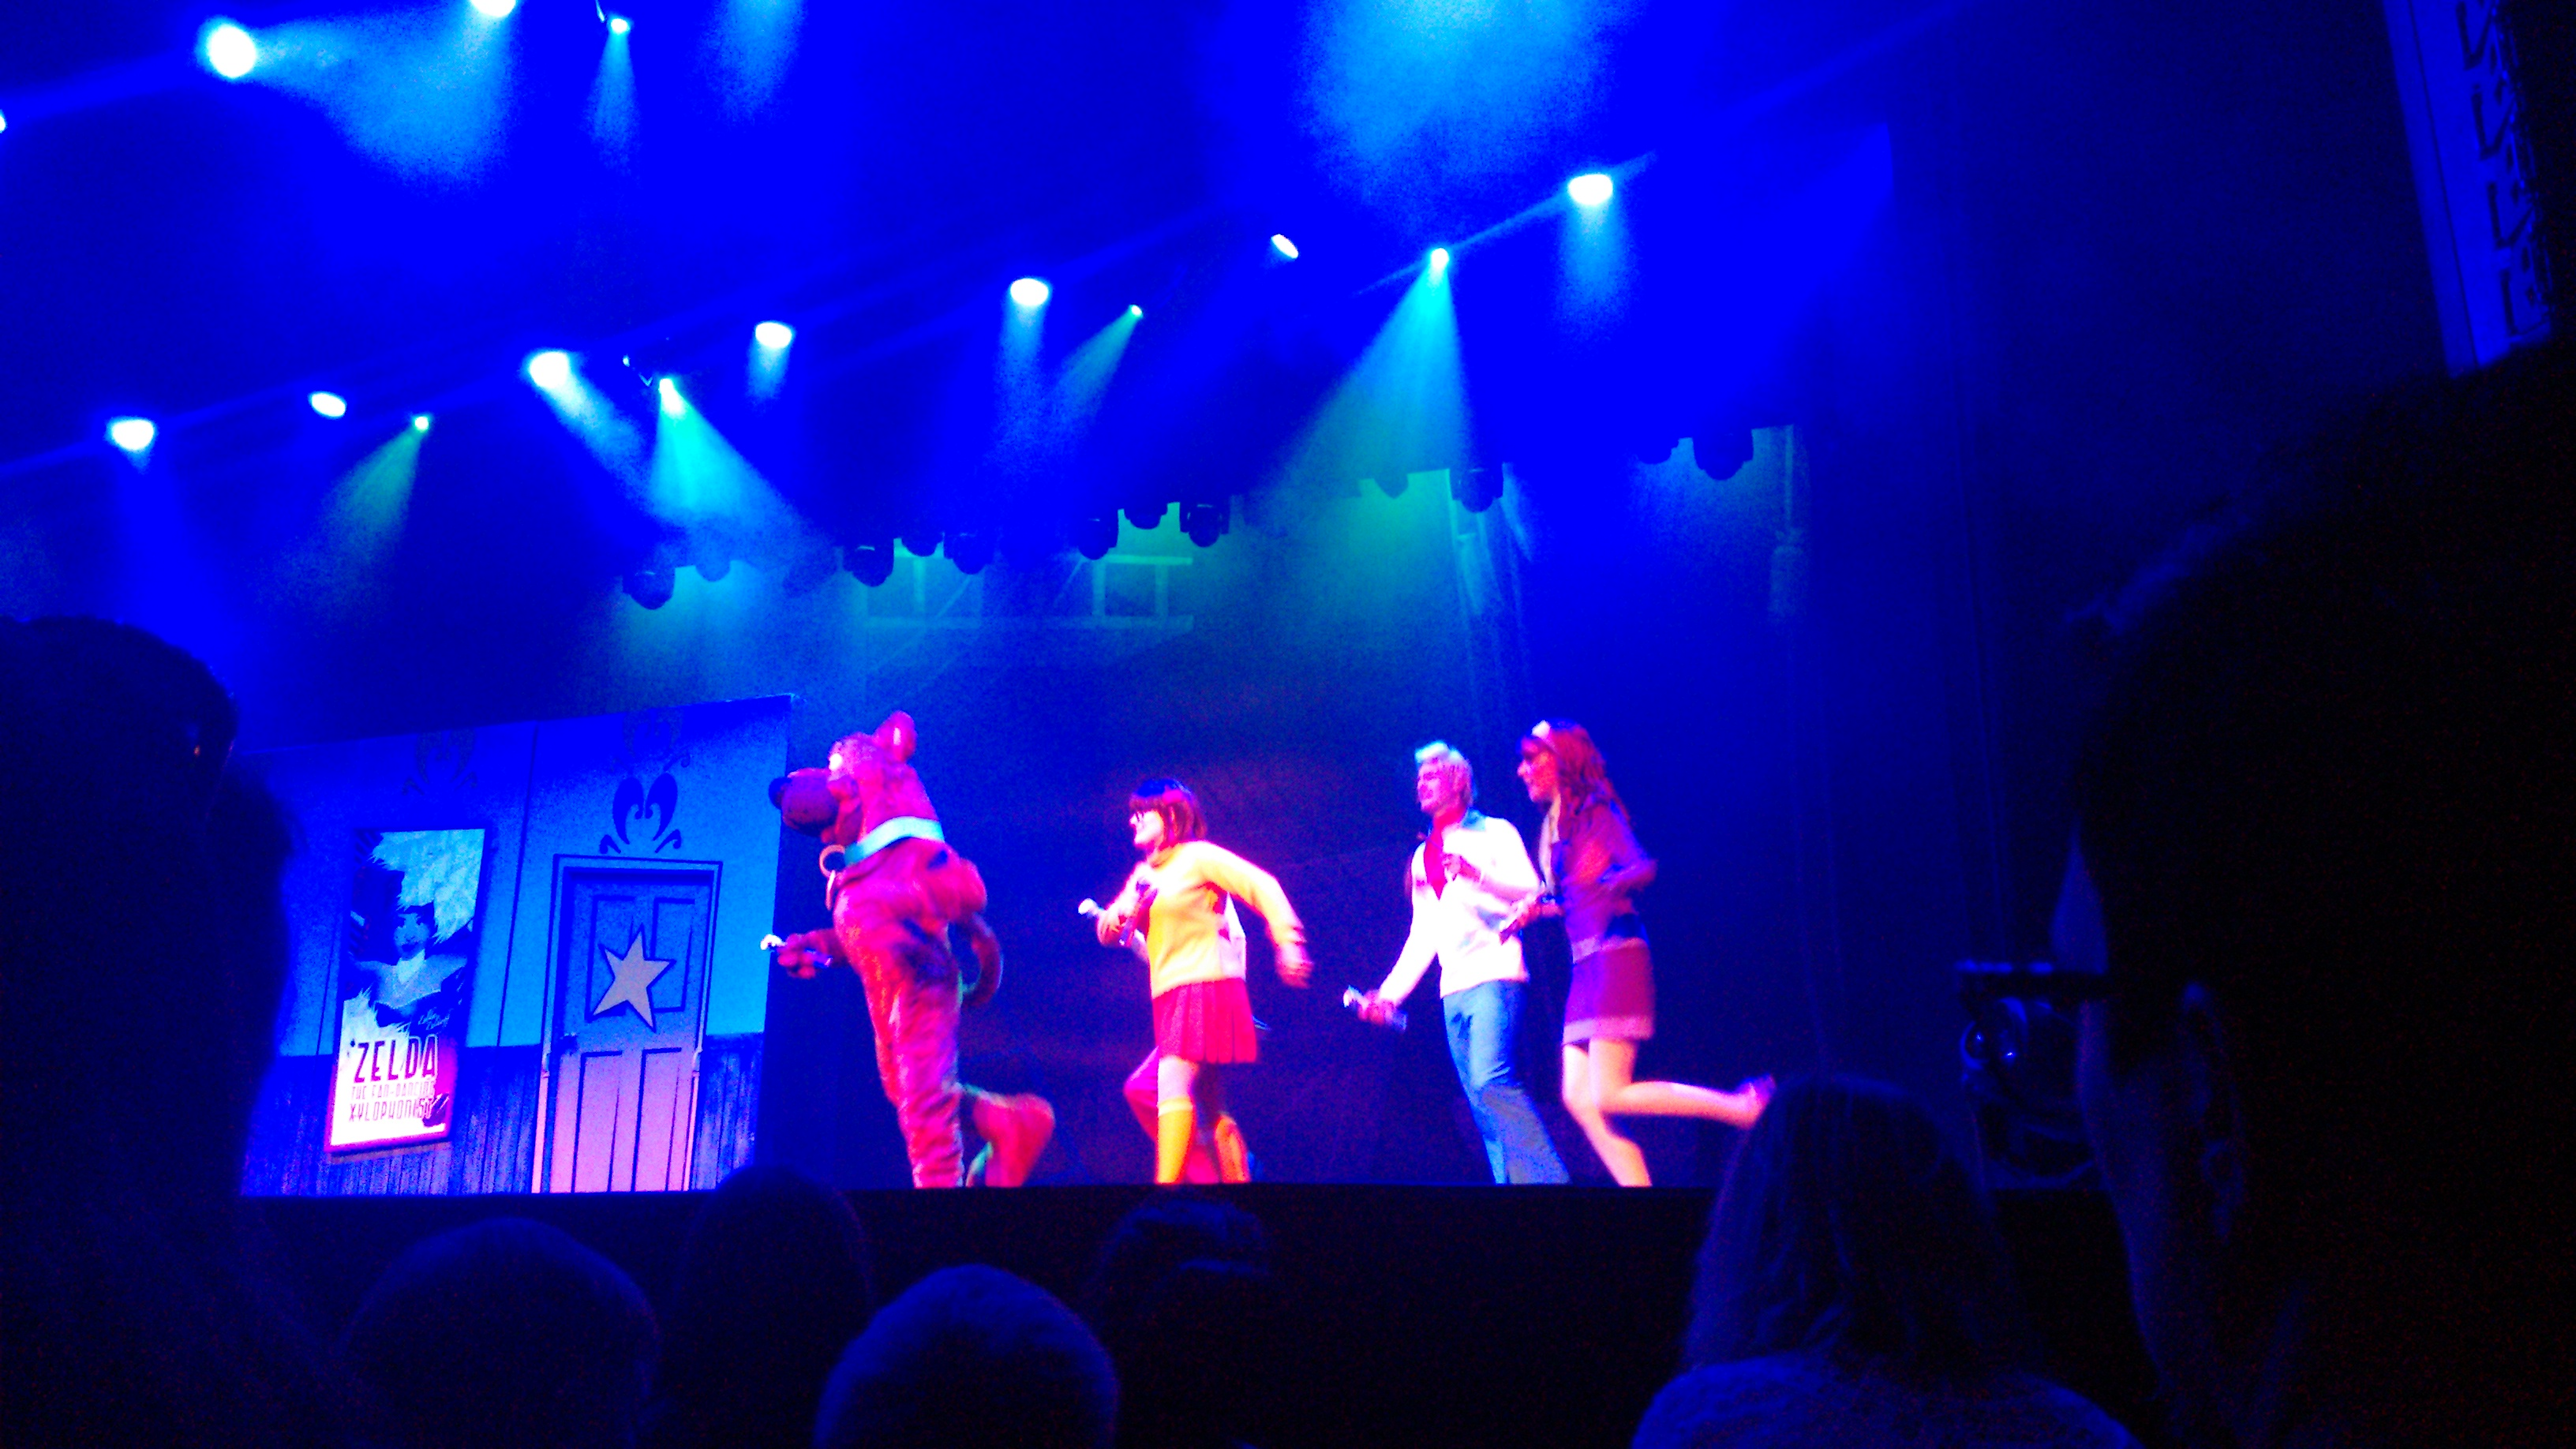 Scooby-Doo on stage